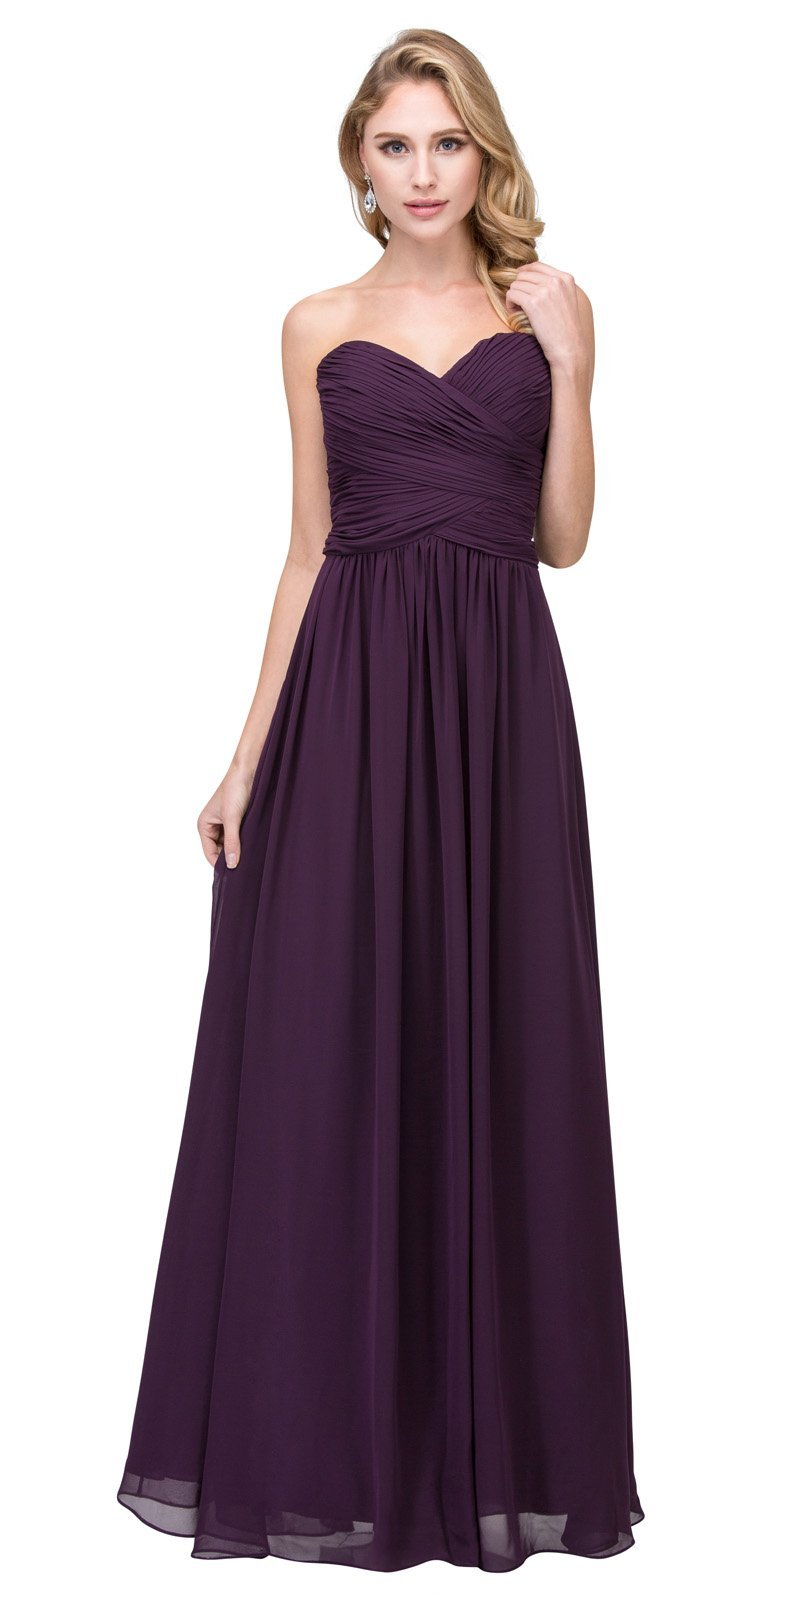 a96a8e10f2 ... Starbox USA L6126 Sweetheart Ruched Chiffon Eggplant Bridesmaid Dress  ...